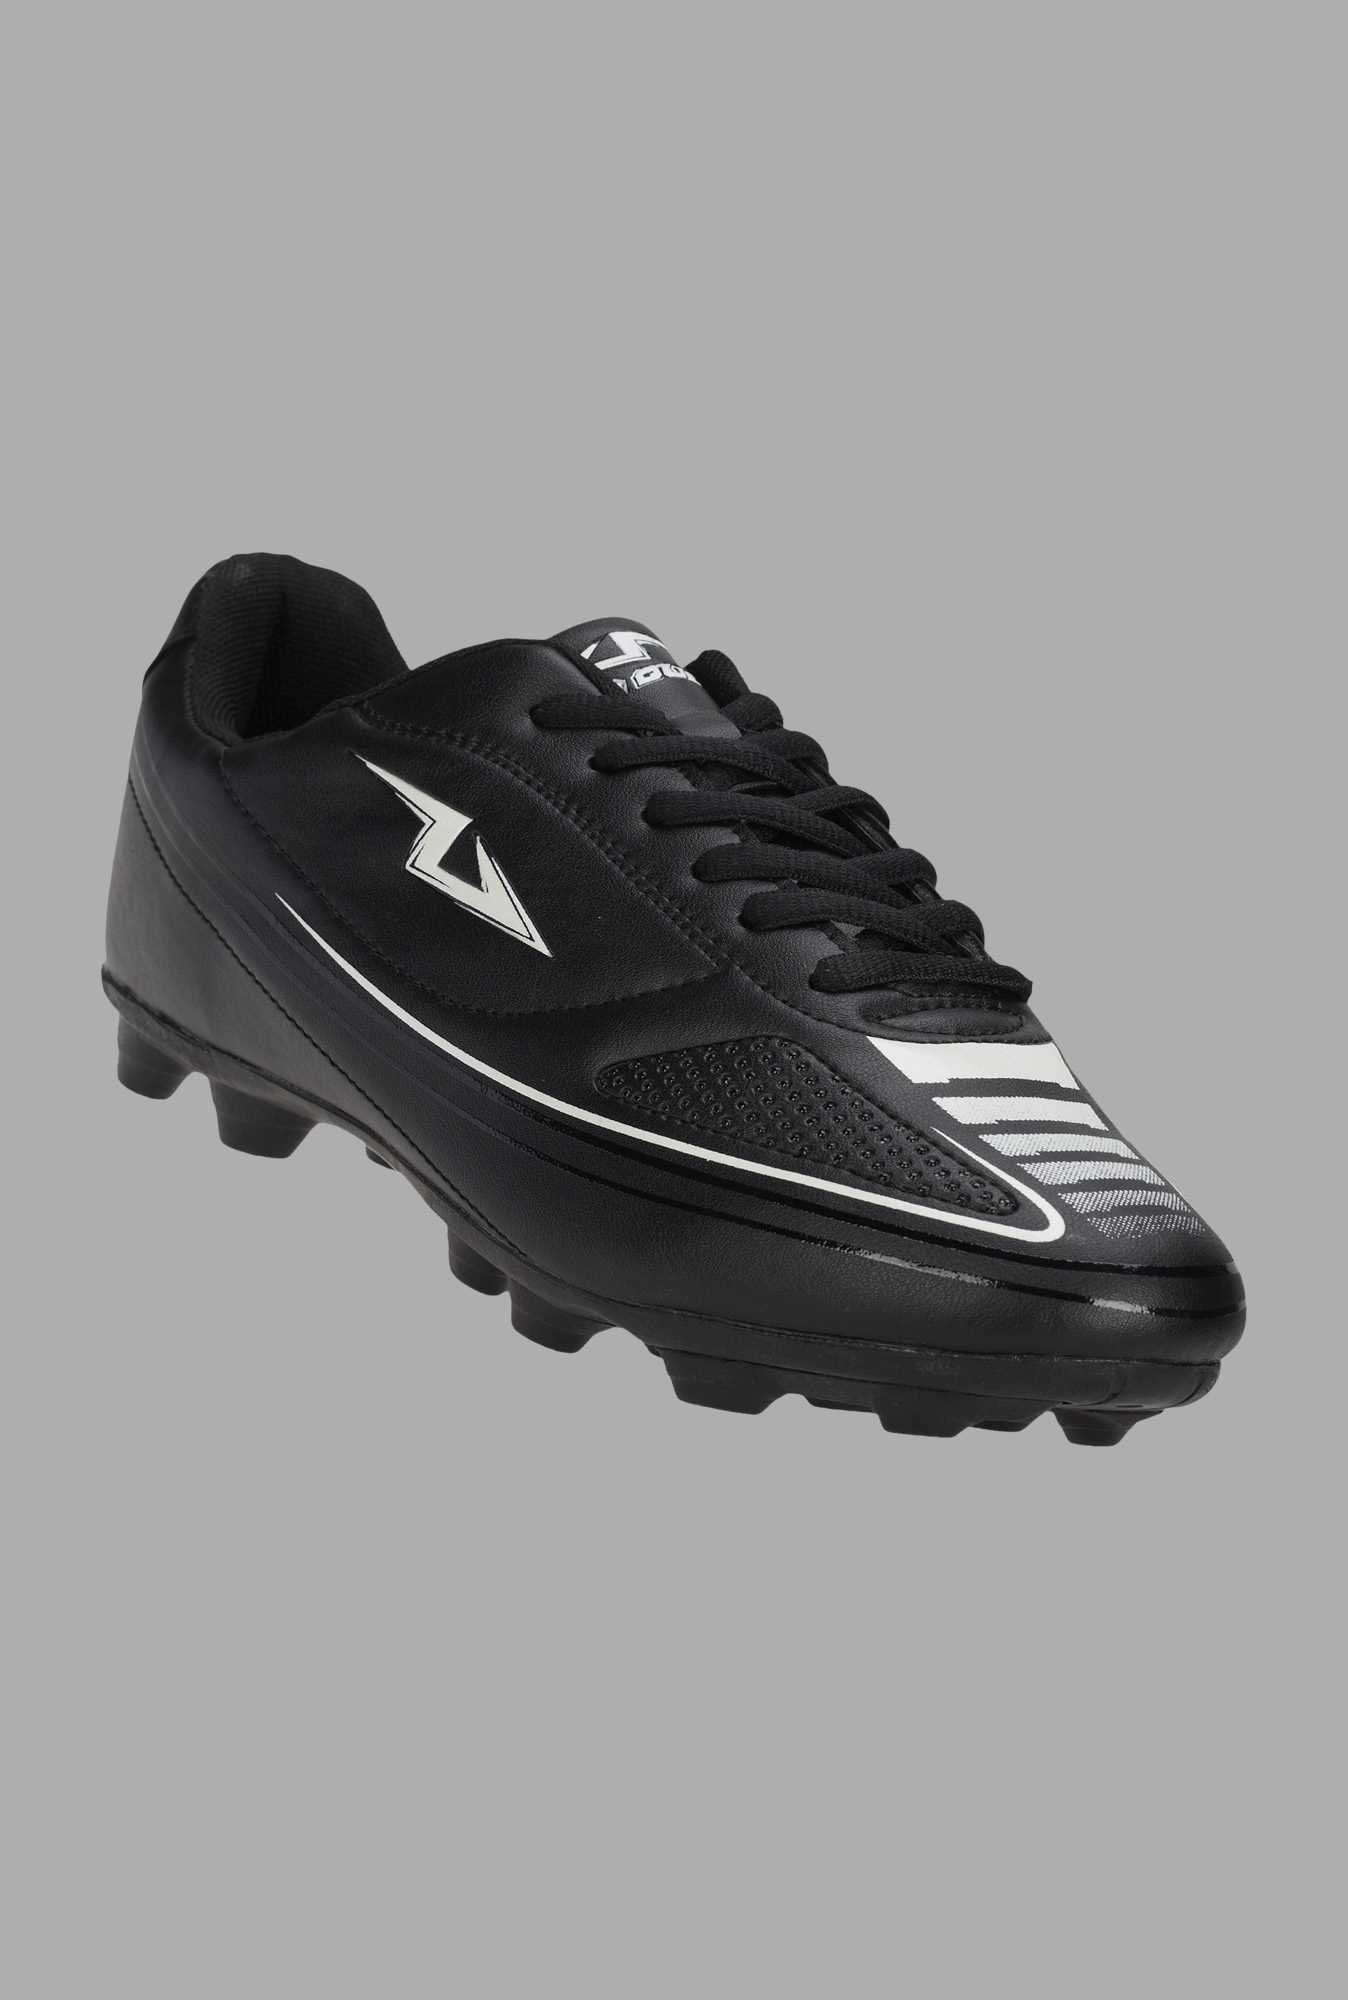 Team Quest Black Football Shoes